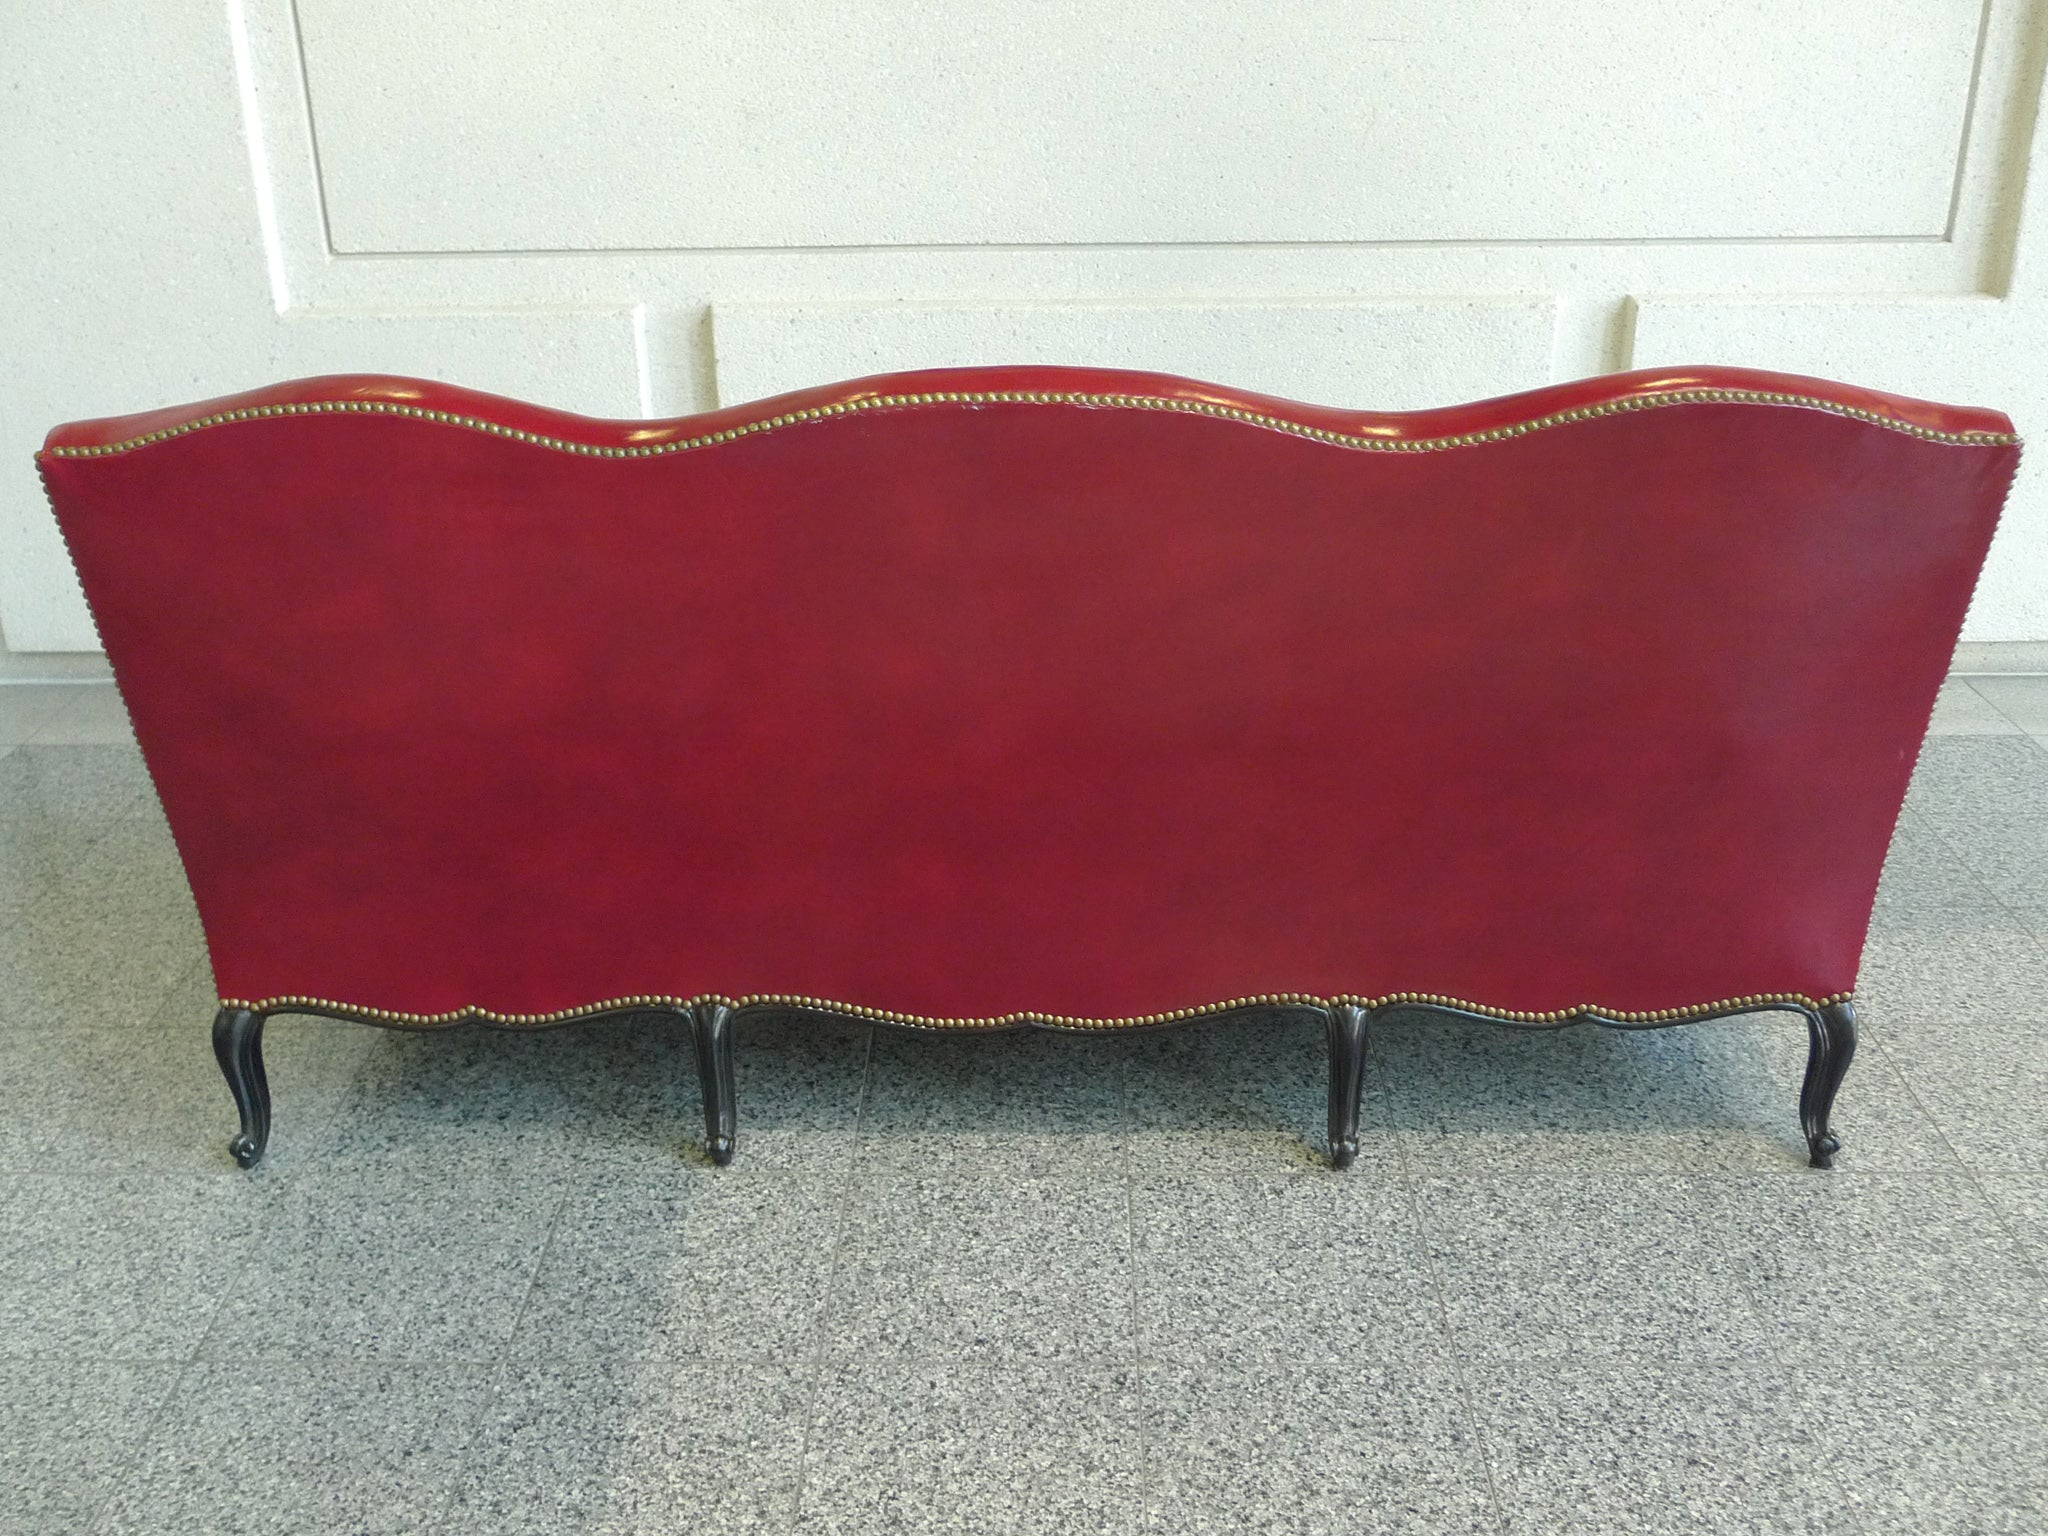 Louis xv style red leather camelback sofa with paul smith fabric at 1stdibs